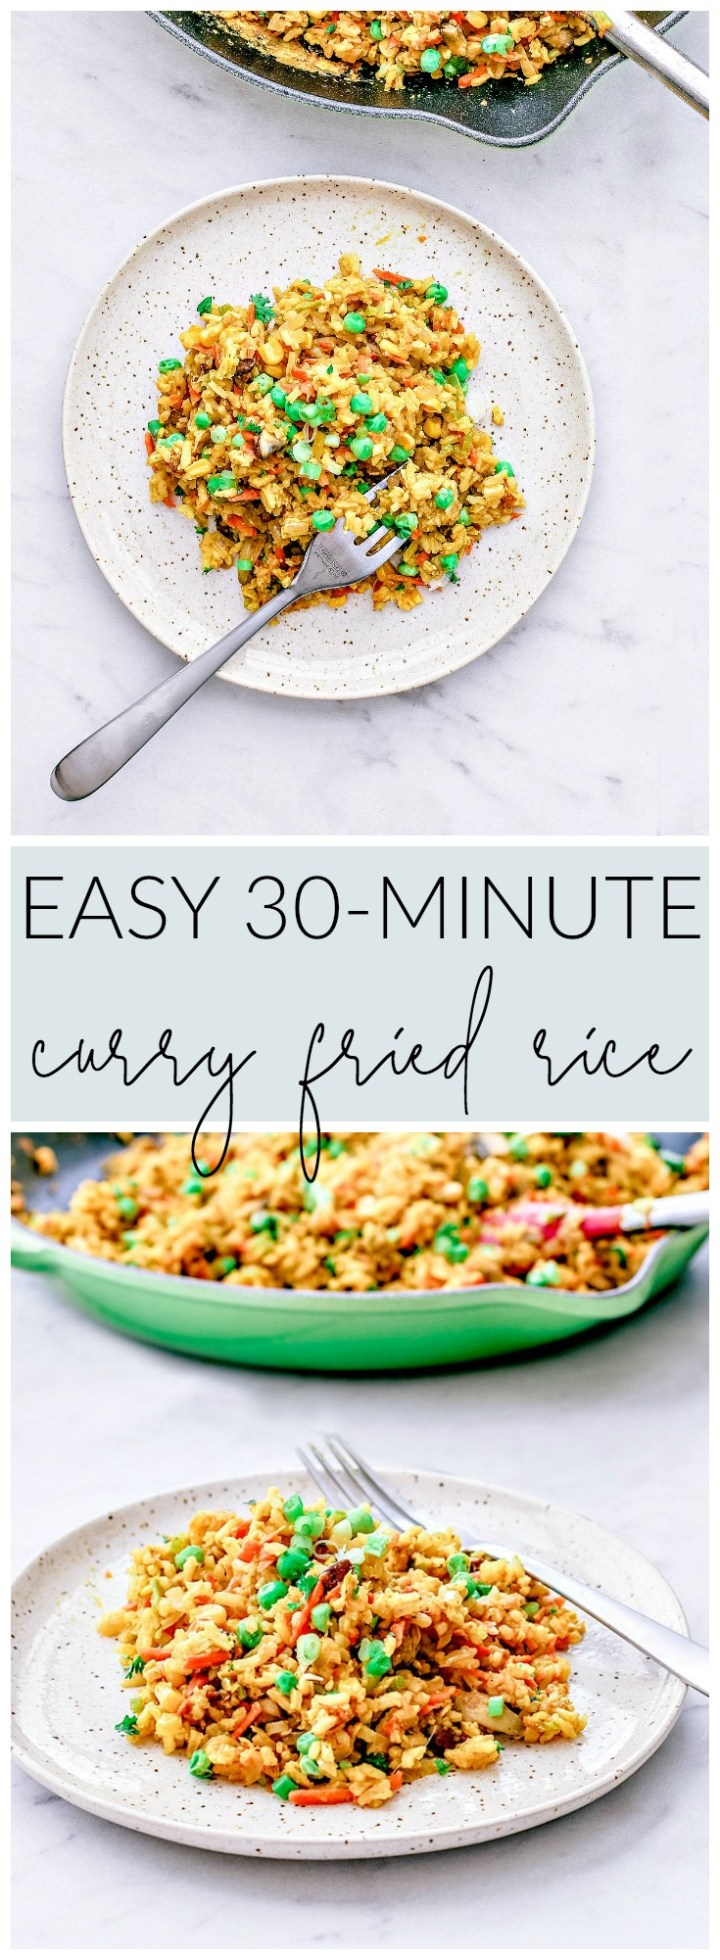 Easy Curry Fried Rice | Killing Thyme